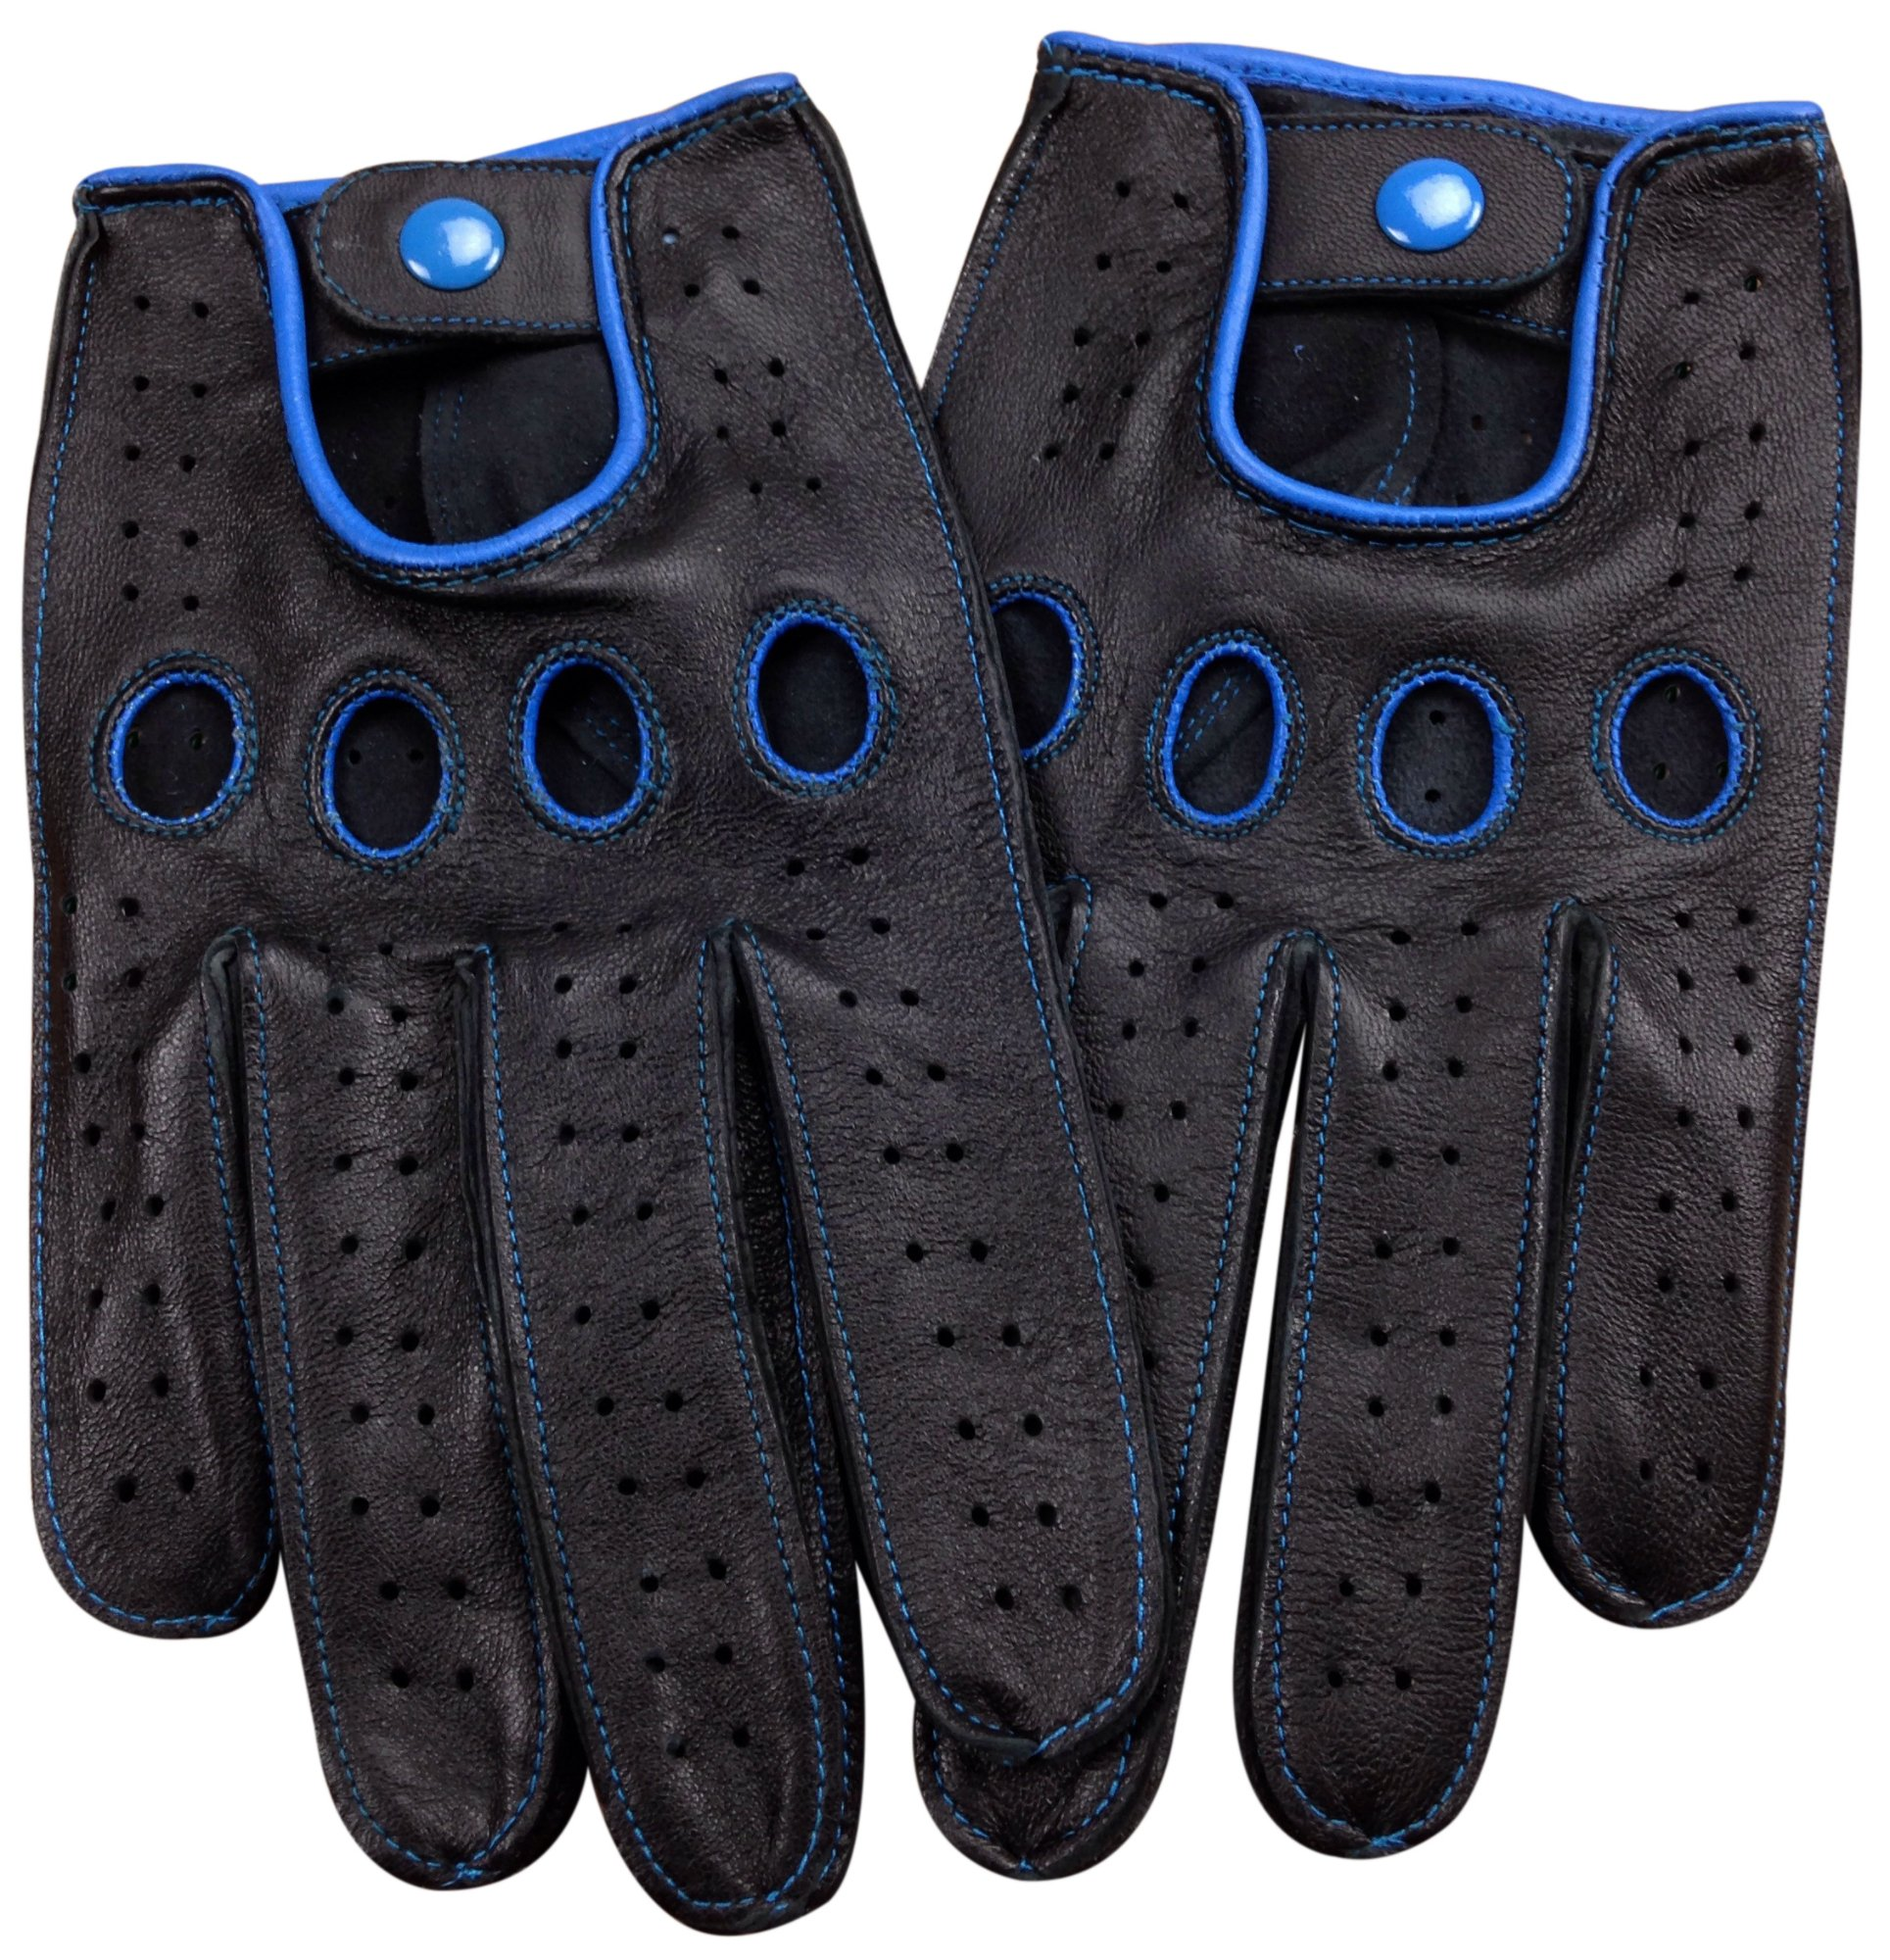 Genuine Nappa leather Driving Gloves Touchscreen Full finger Cycling Gym M Bu